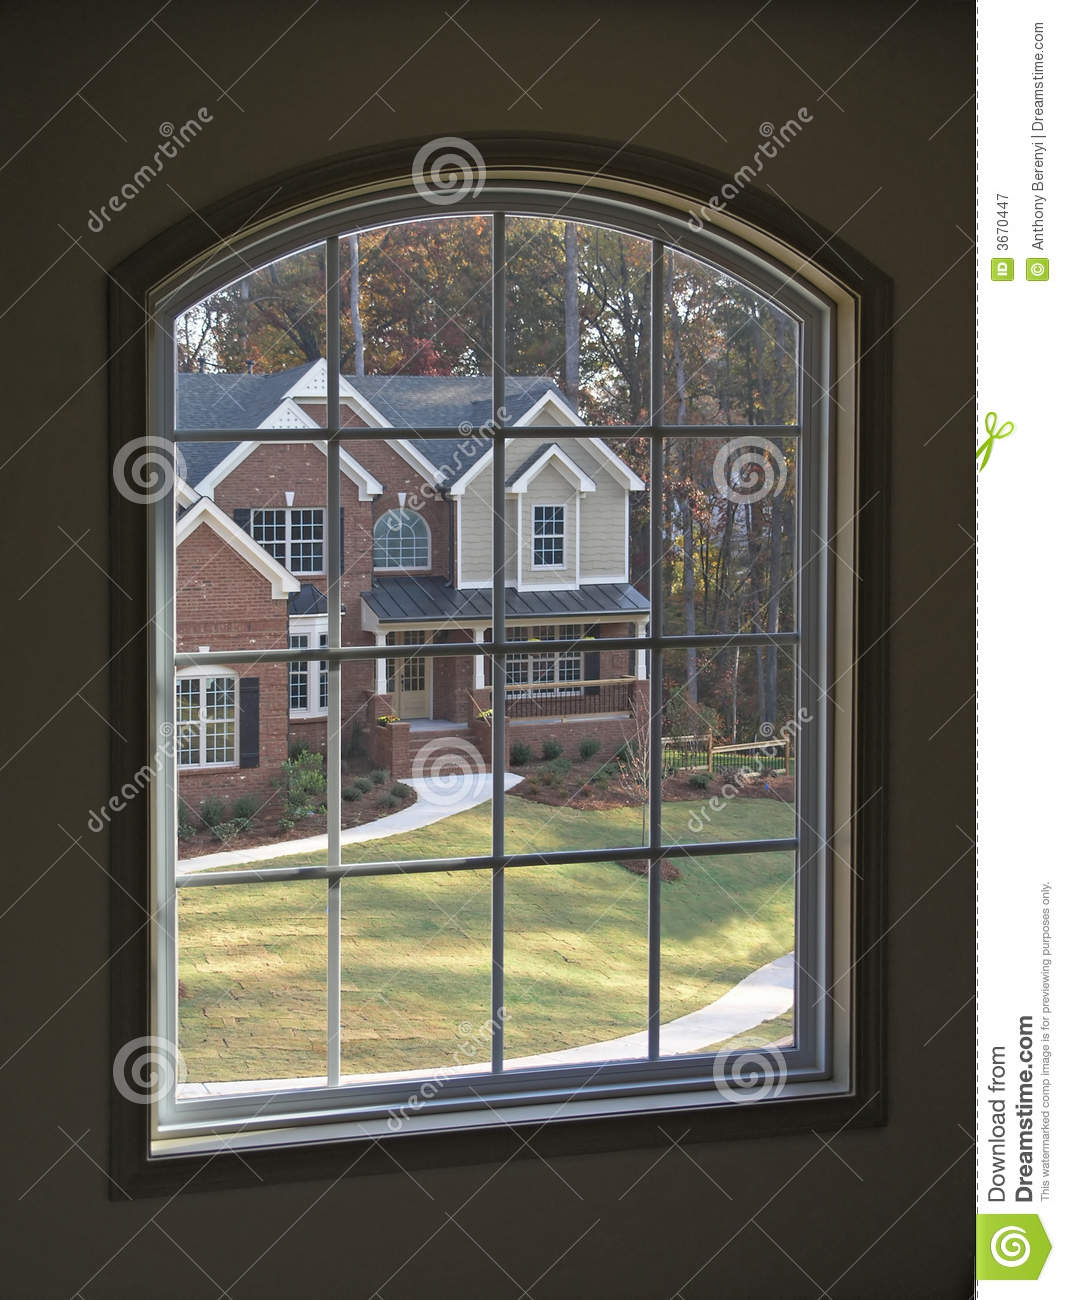 Luxury Home Thru Window 1 Royalty Free Stock Photography